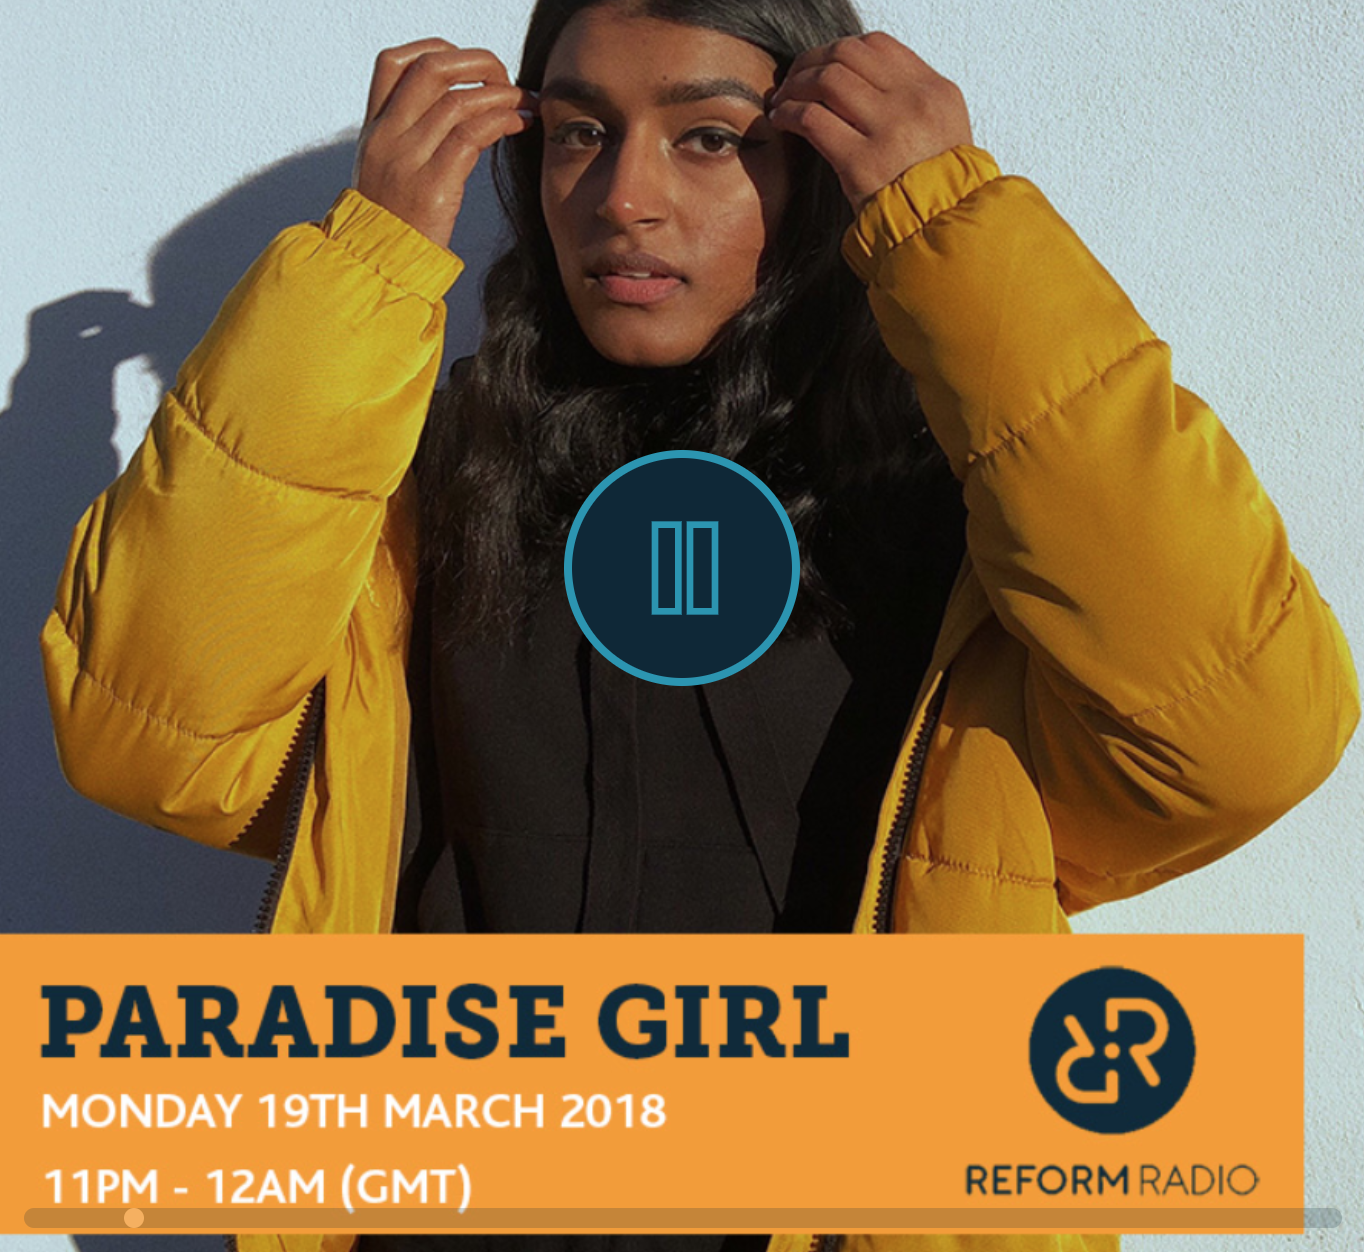 PARADISE GIRL  REFORM RADIO  Our co-founders recently joined our fave Paradise Girl Jasmin Sehra on her monthly radio show giving our top tips for success in the creative industries.